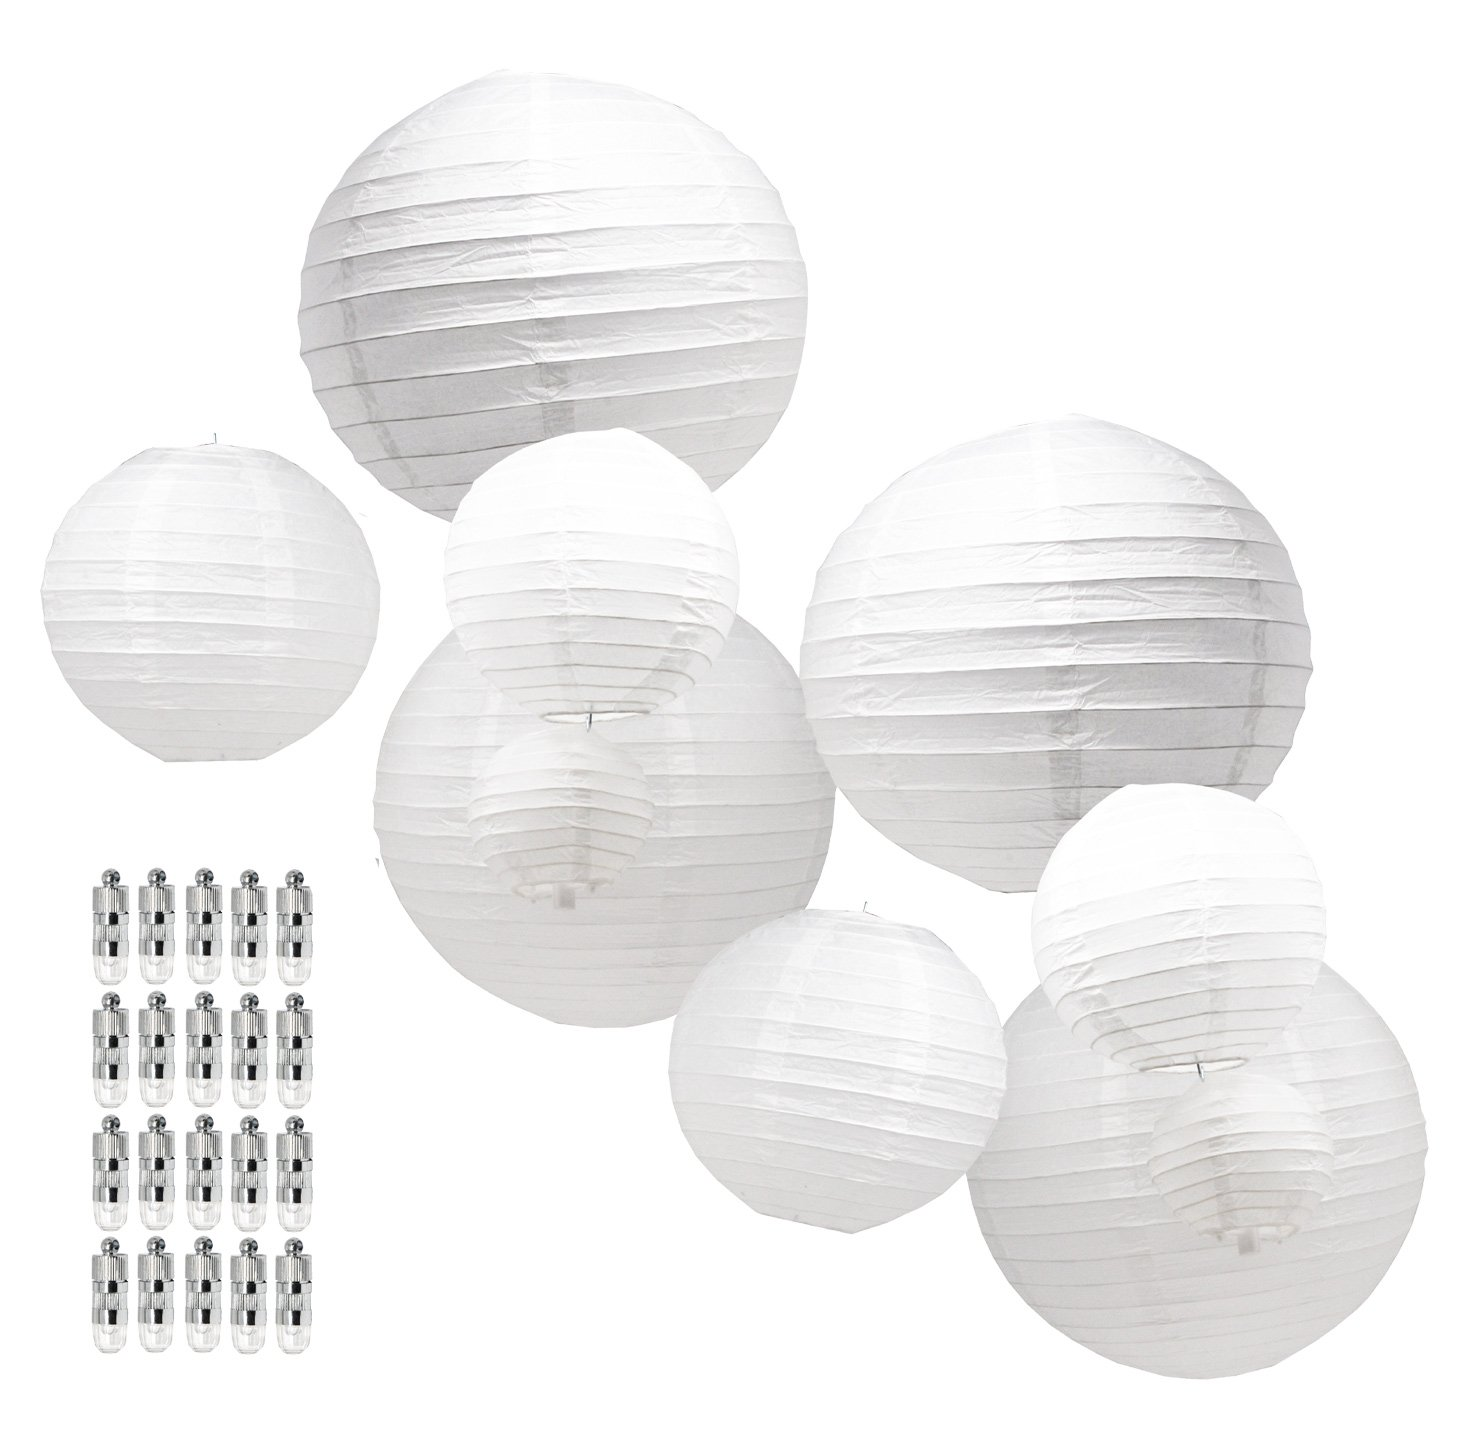 Mudra Crafts White Black Decorative Hanging Round Pastel Paper Lanterns with Led Light Bulb and Battery Set (White 12 10 8 6 4 inches)